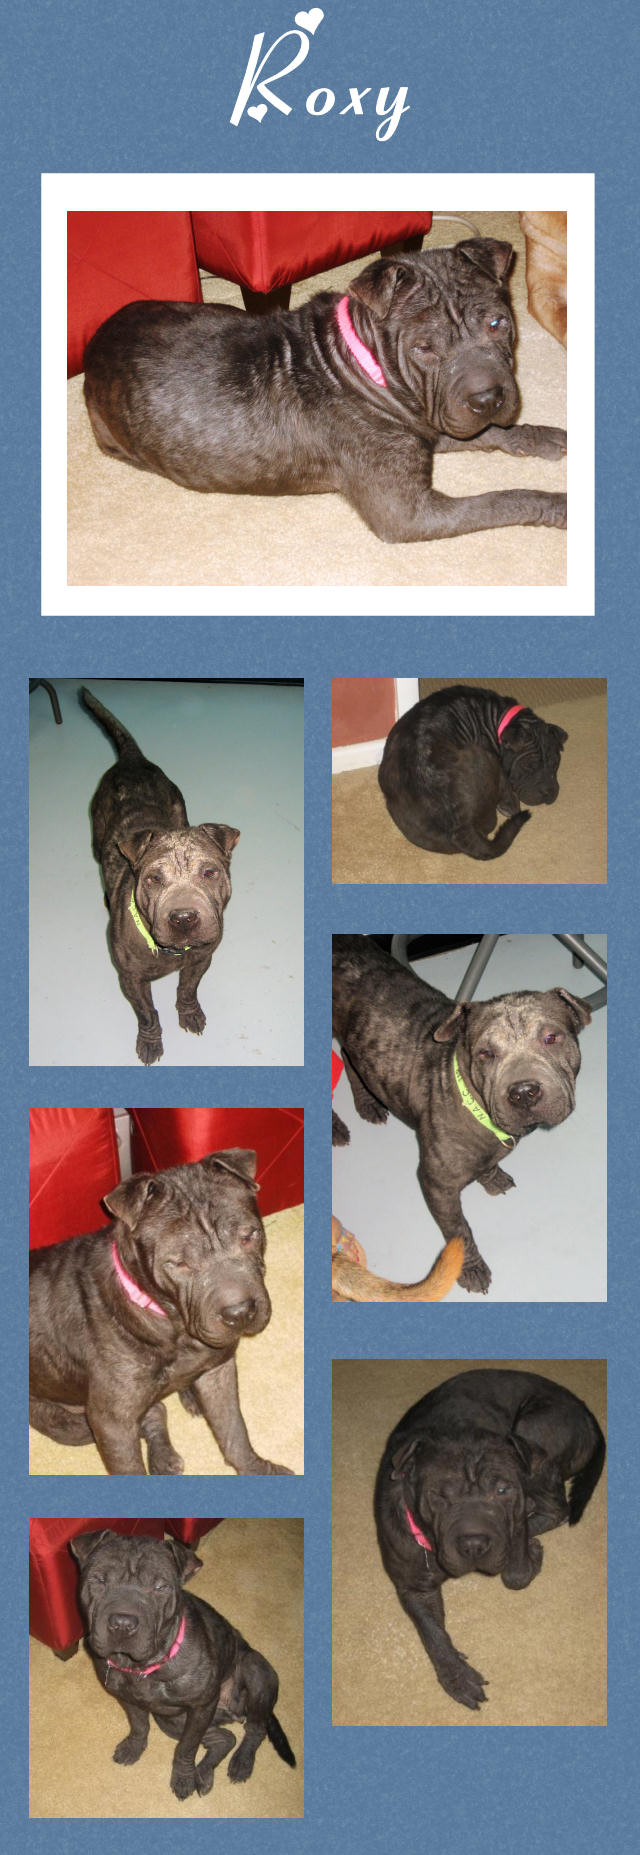 Roxy Black Female Chinese Shar Pei Adopted From Shar Pei Rescue Of Virginia